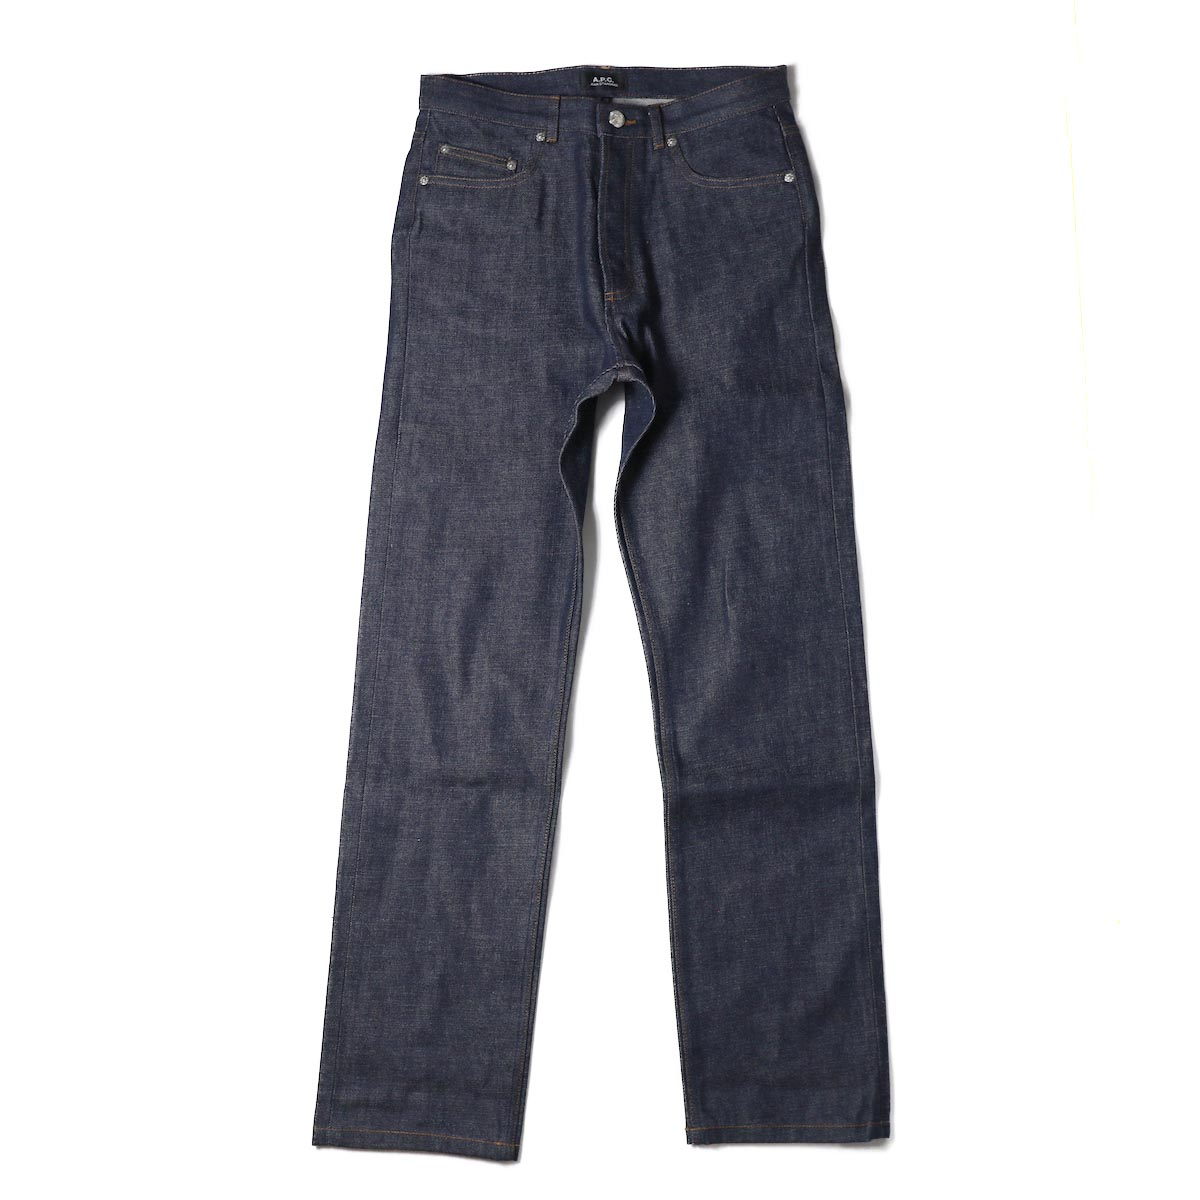 A.P.C. / STANDARD RIDID DENIM